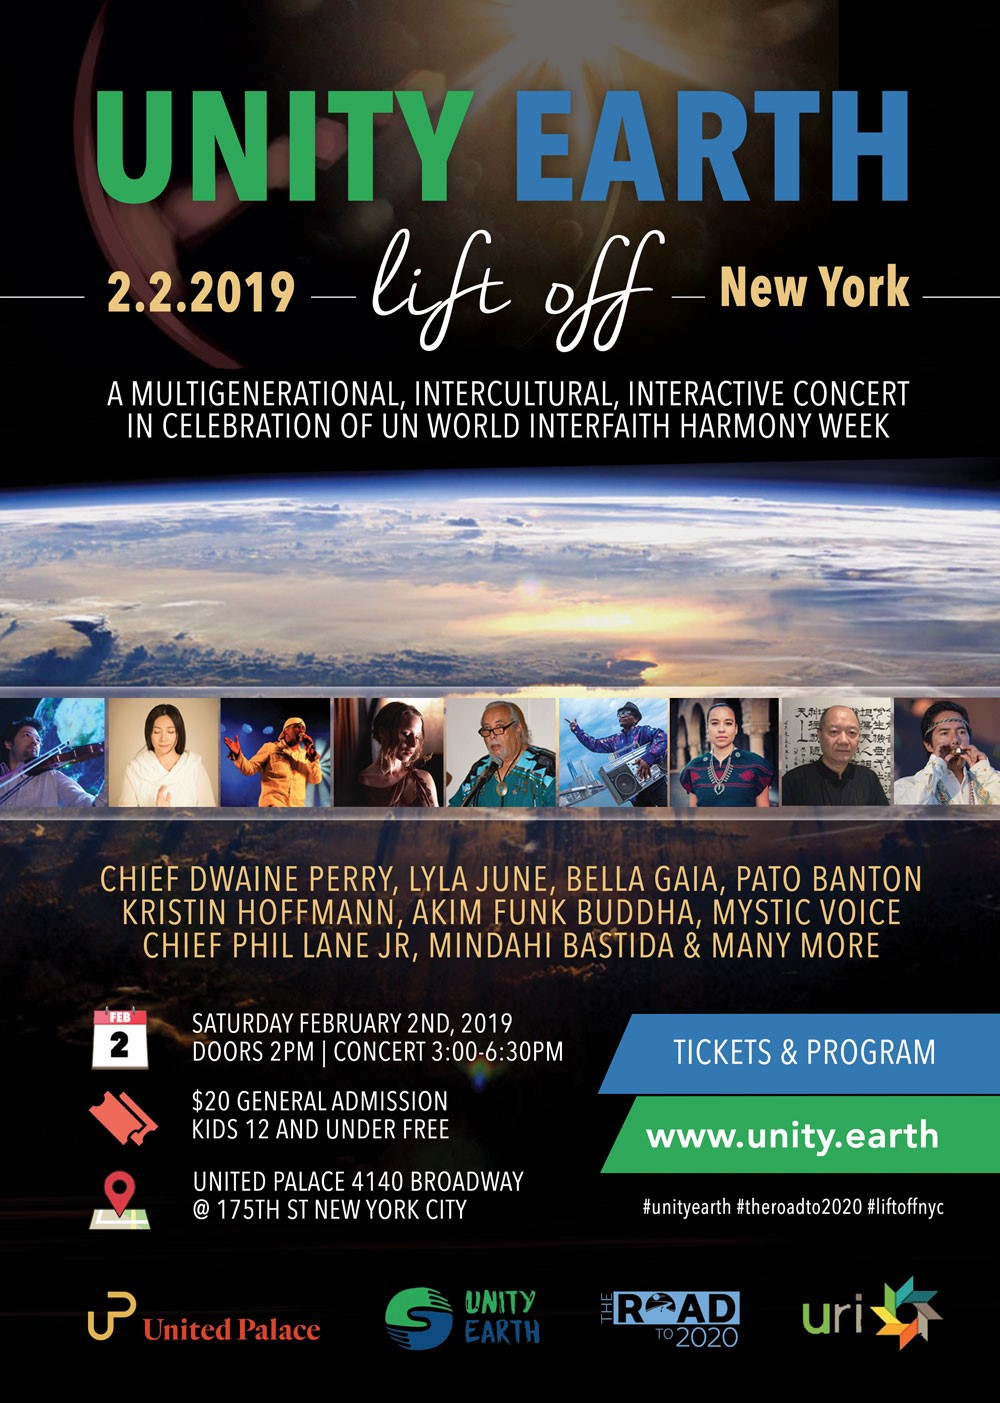 Unity Earth Lift Off at United Palace Theater 2.2.2019